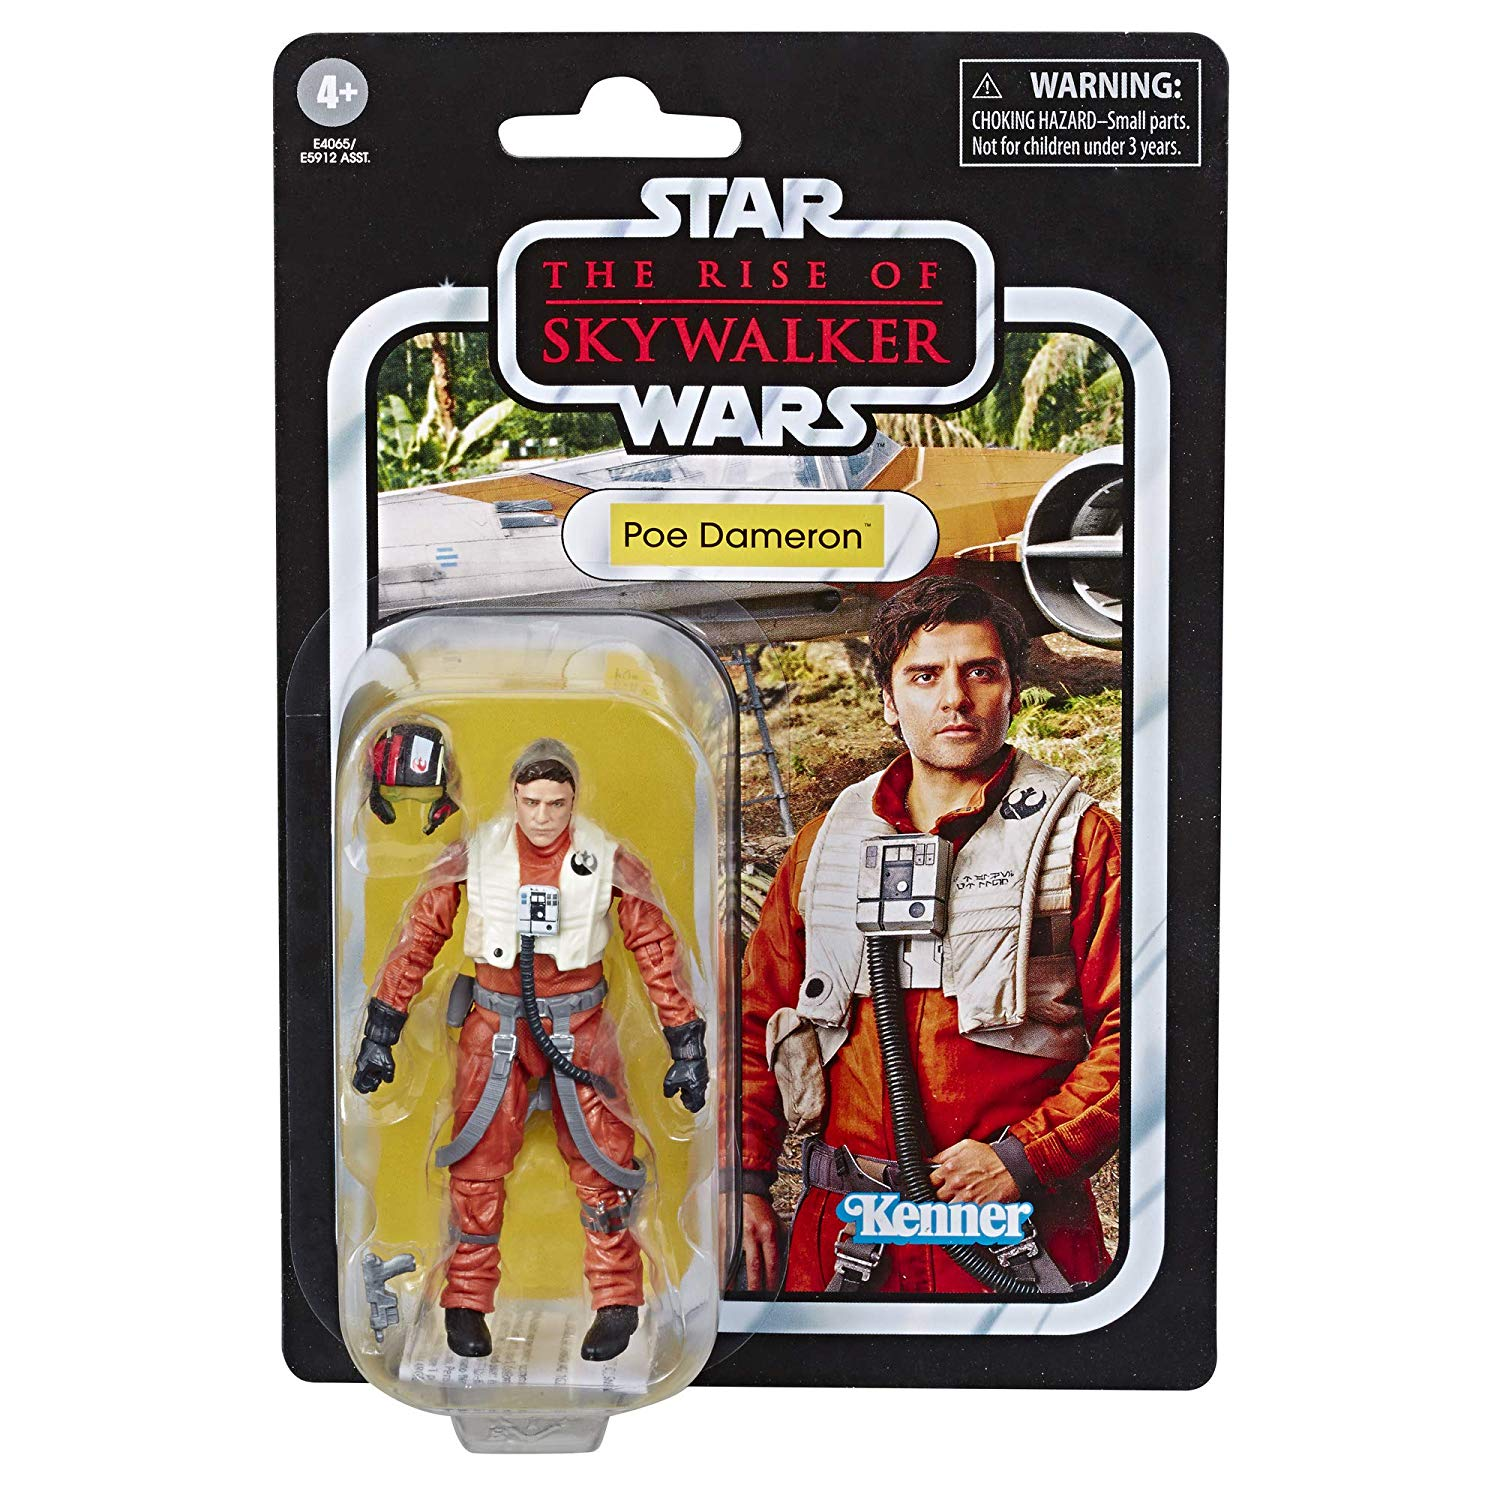 81HO4IIlGHL. SL1500 - Star Wars The Vintage Collection Poe Dameron Toy Action Figure